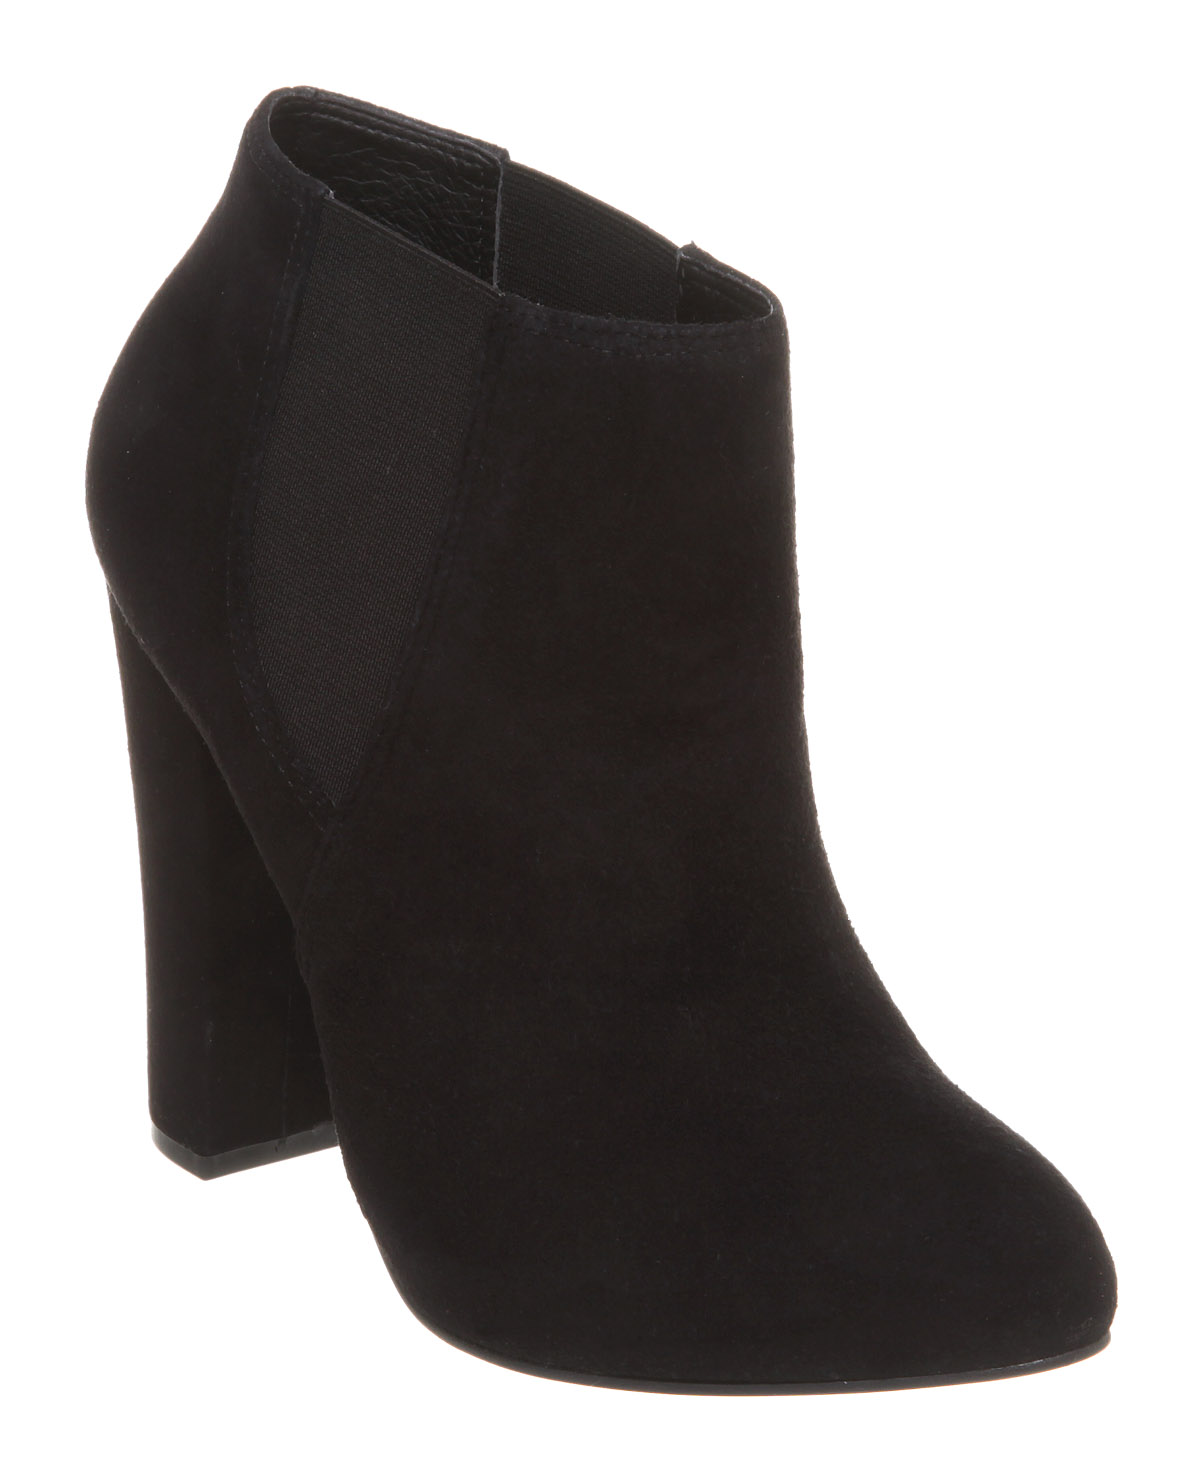 Womens-Office-Kendall-Chelsea-Boot-Black-Suede-Boots